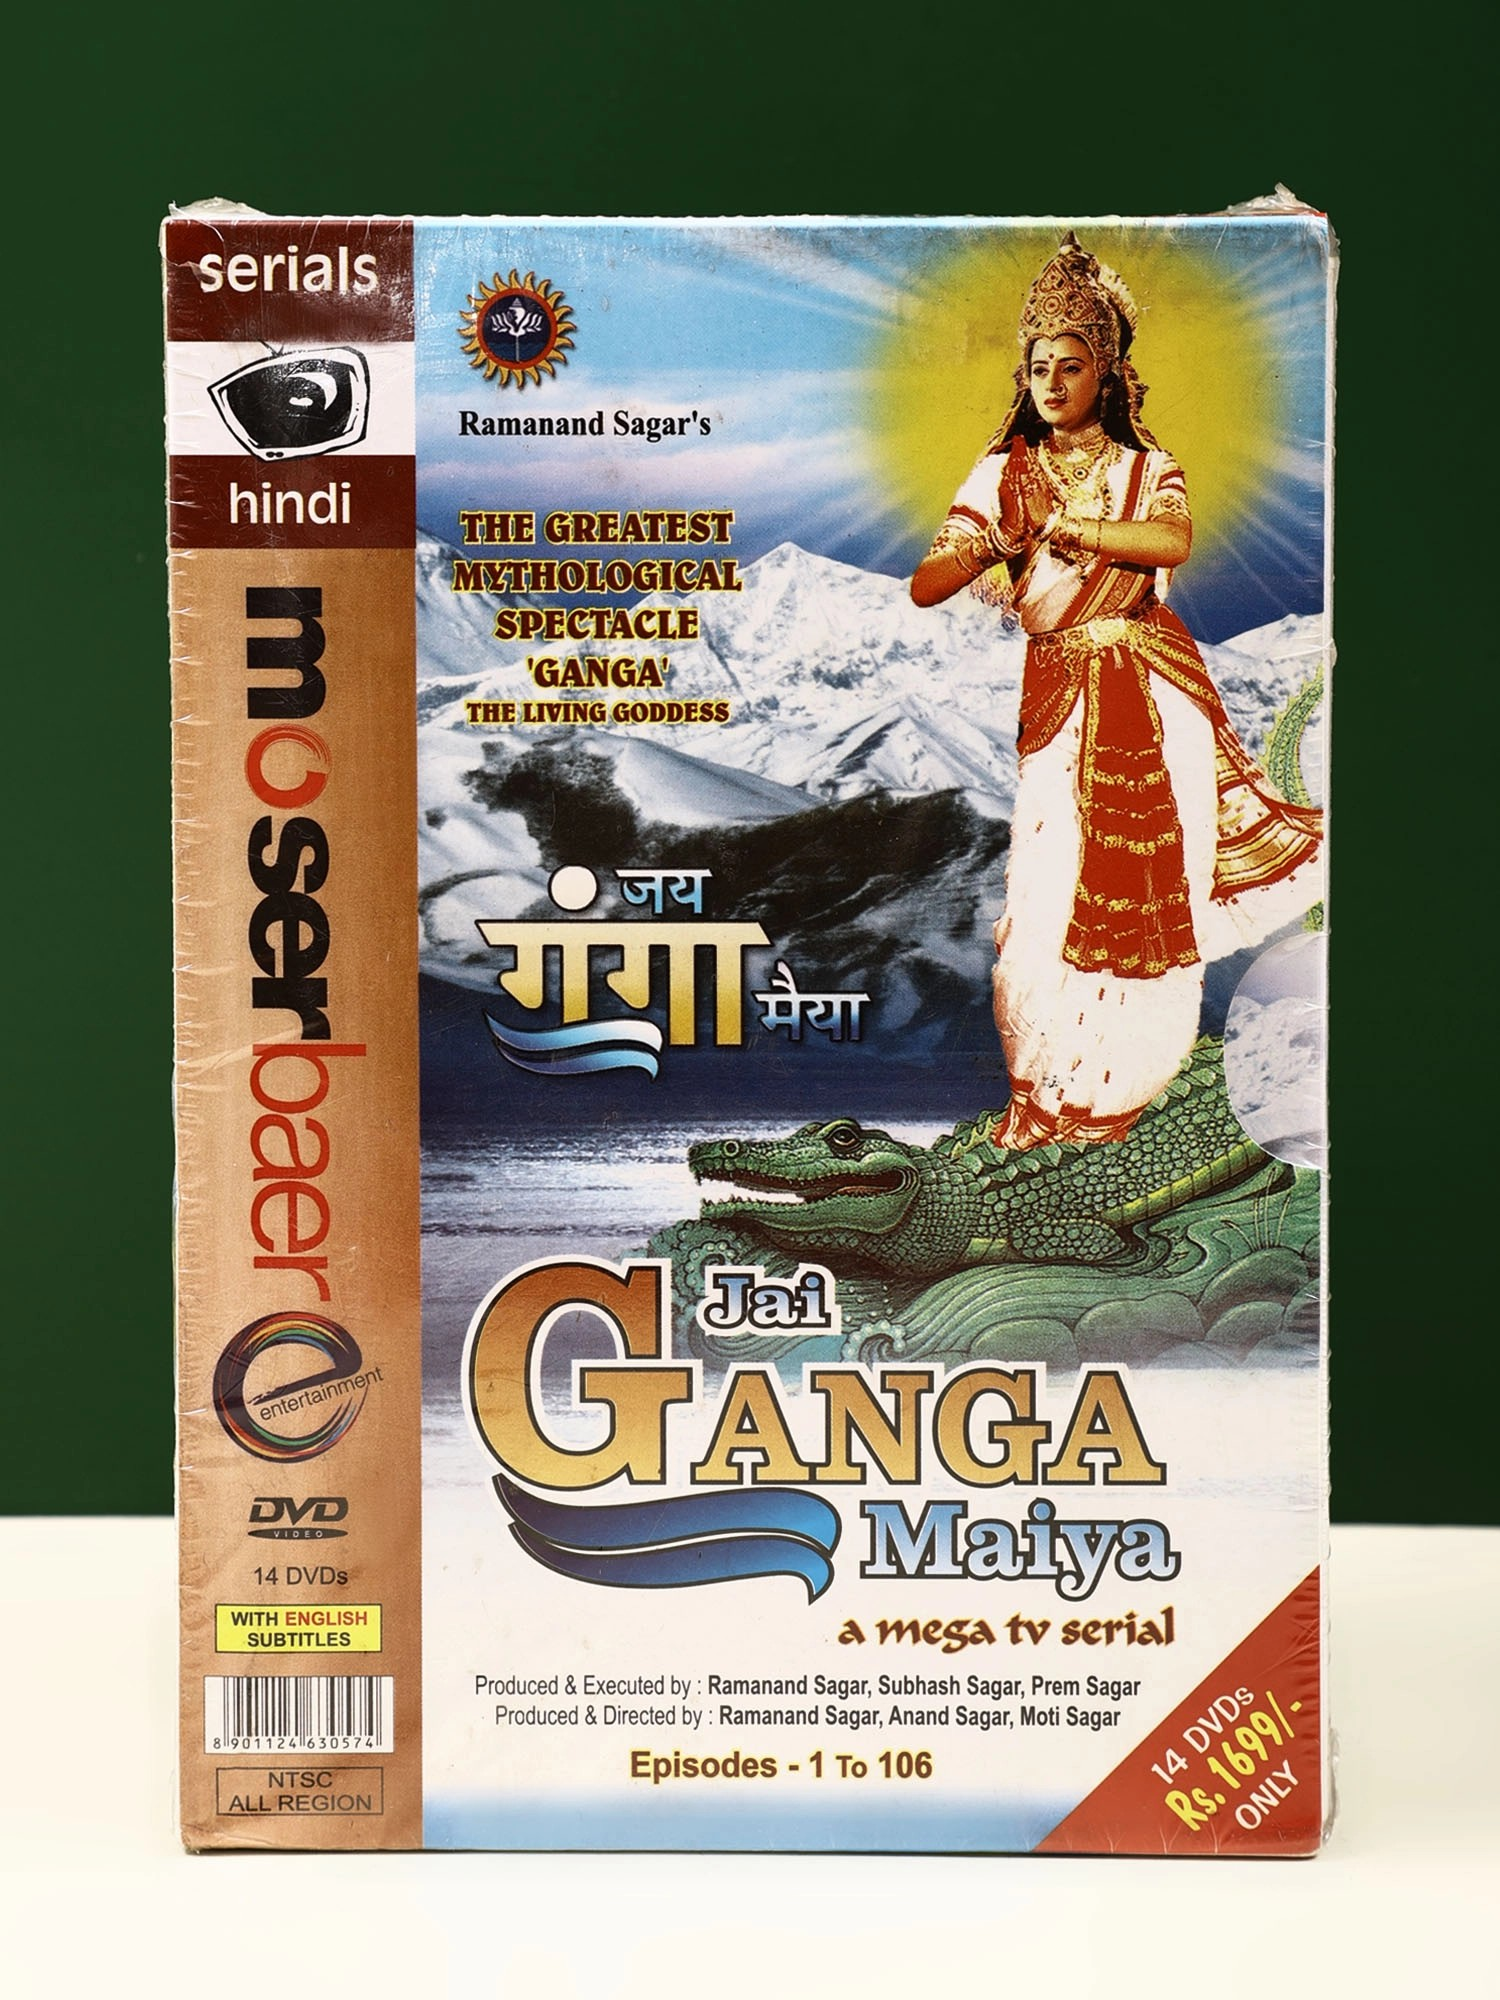 Jai Ganga Maiya: A Mega TV Serial: The Greatest Mythological Spectacle 